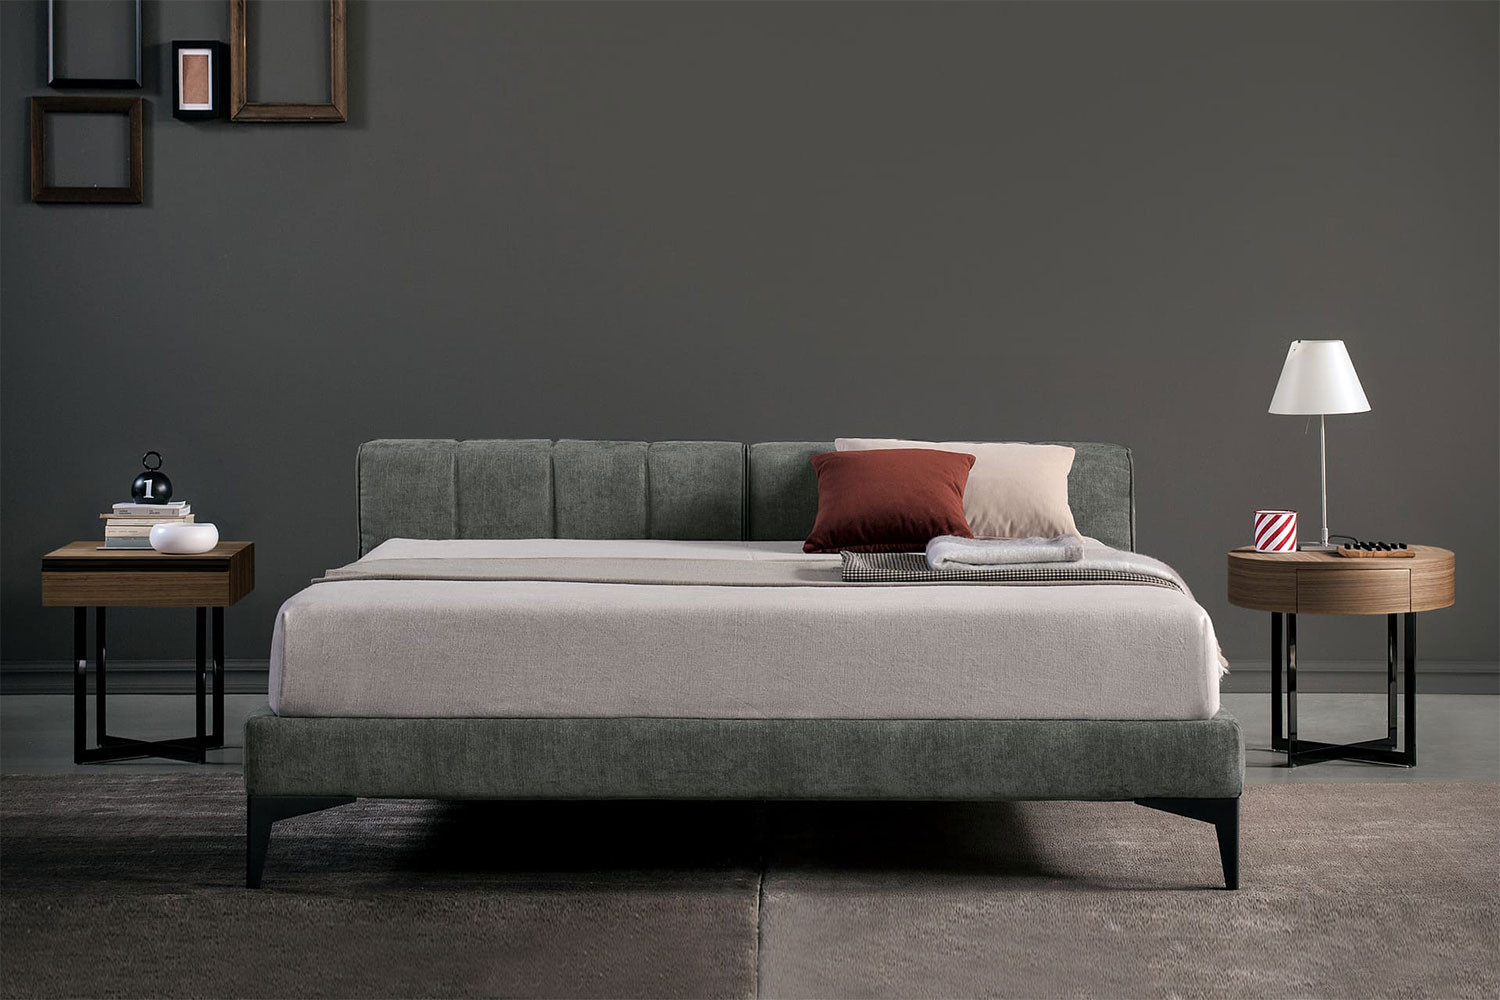 Upholstered king size low headboard bed with high tapered metal legs